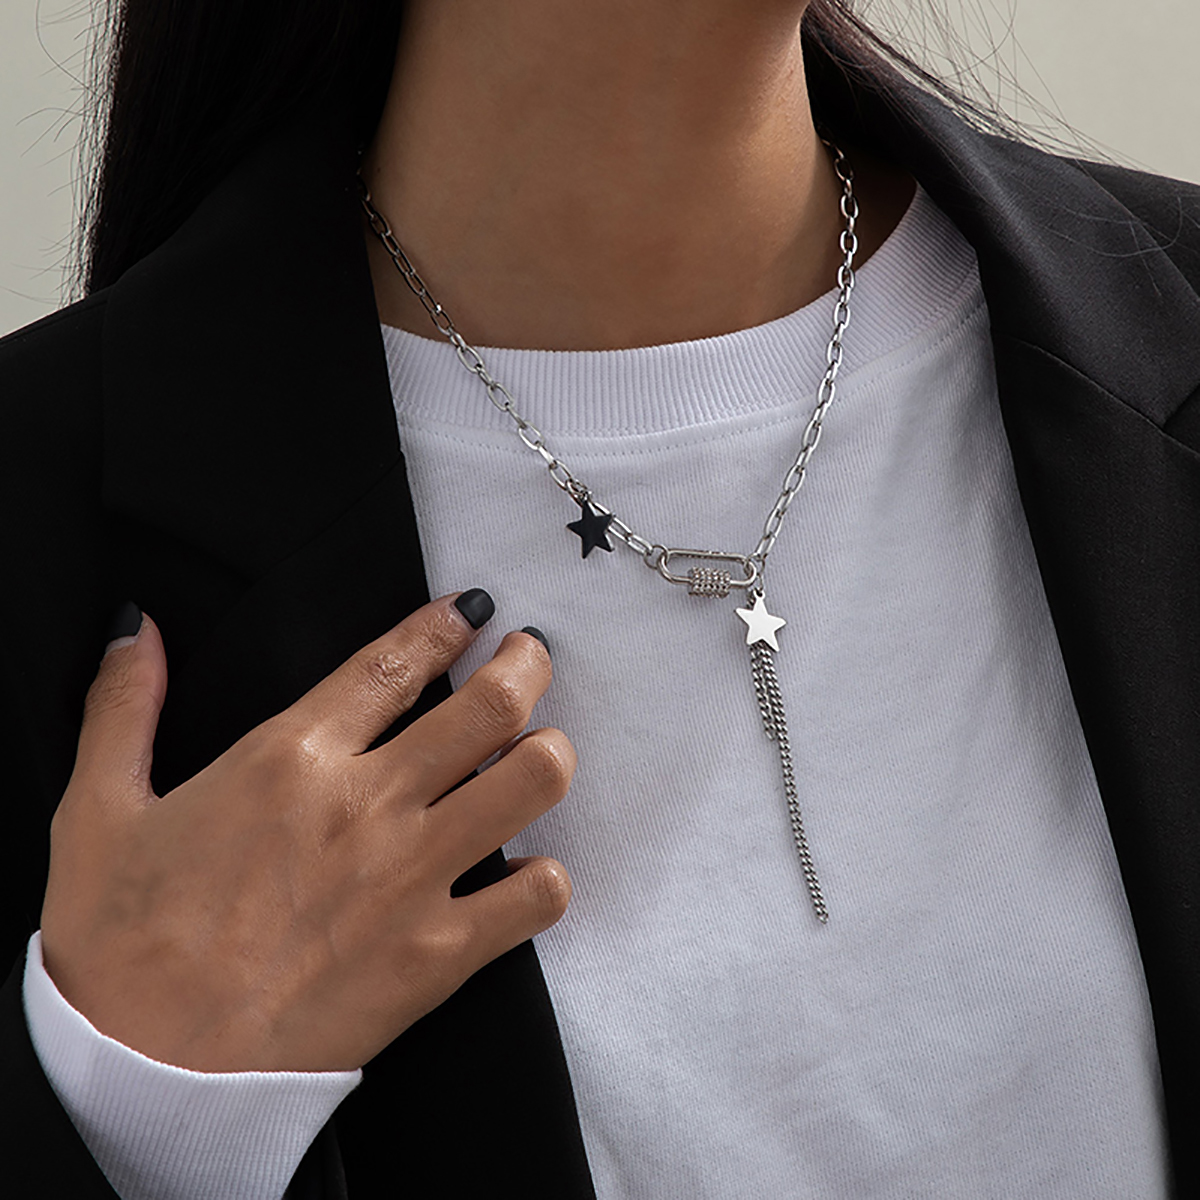 SHIXIN Stainless Steel Chain With Stars/Tassel Pendants Necklace for Women/Men Fashion Rhinestone Necklaces 2020 Korean Jewelry